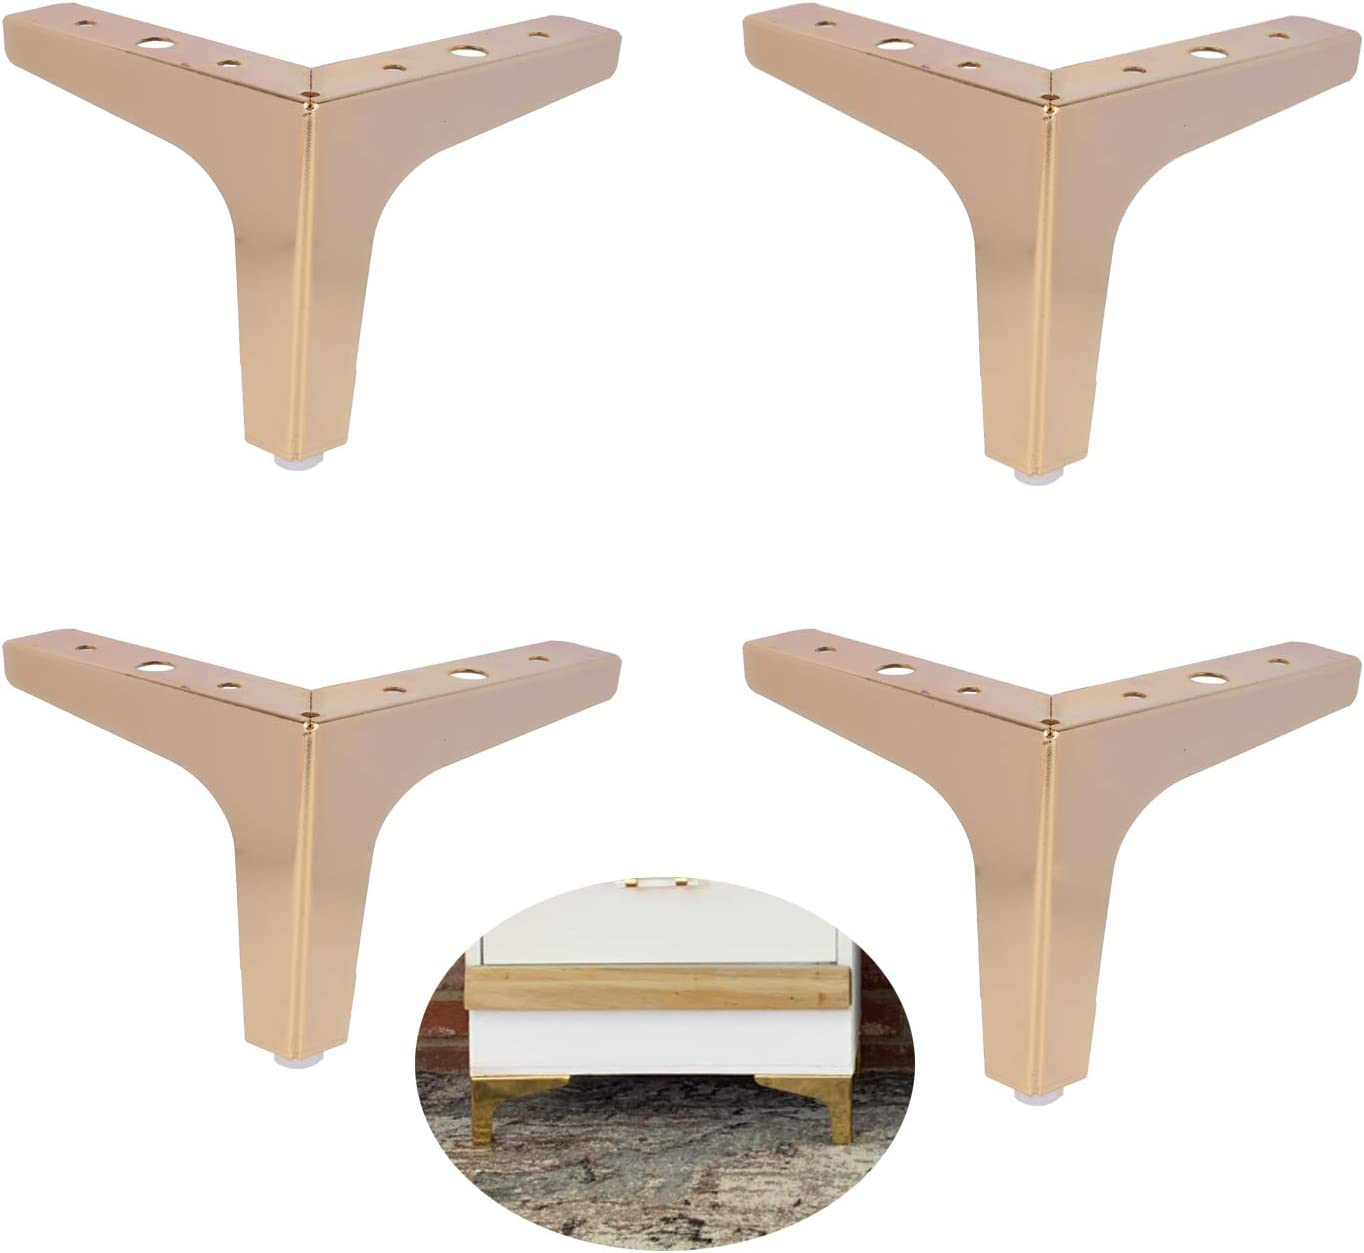 ALXEH 4 Inch Steel Furniture Table Legs Gold, 4pcs Metal Furniture Sofa Feet as DIY Furniture Leg Replacement, Great for Cabinet, Cupboard and Couch